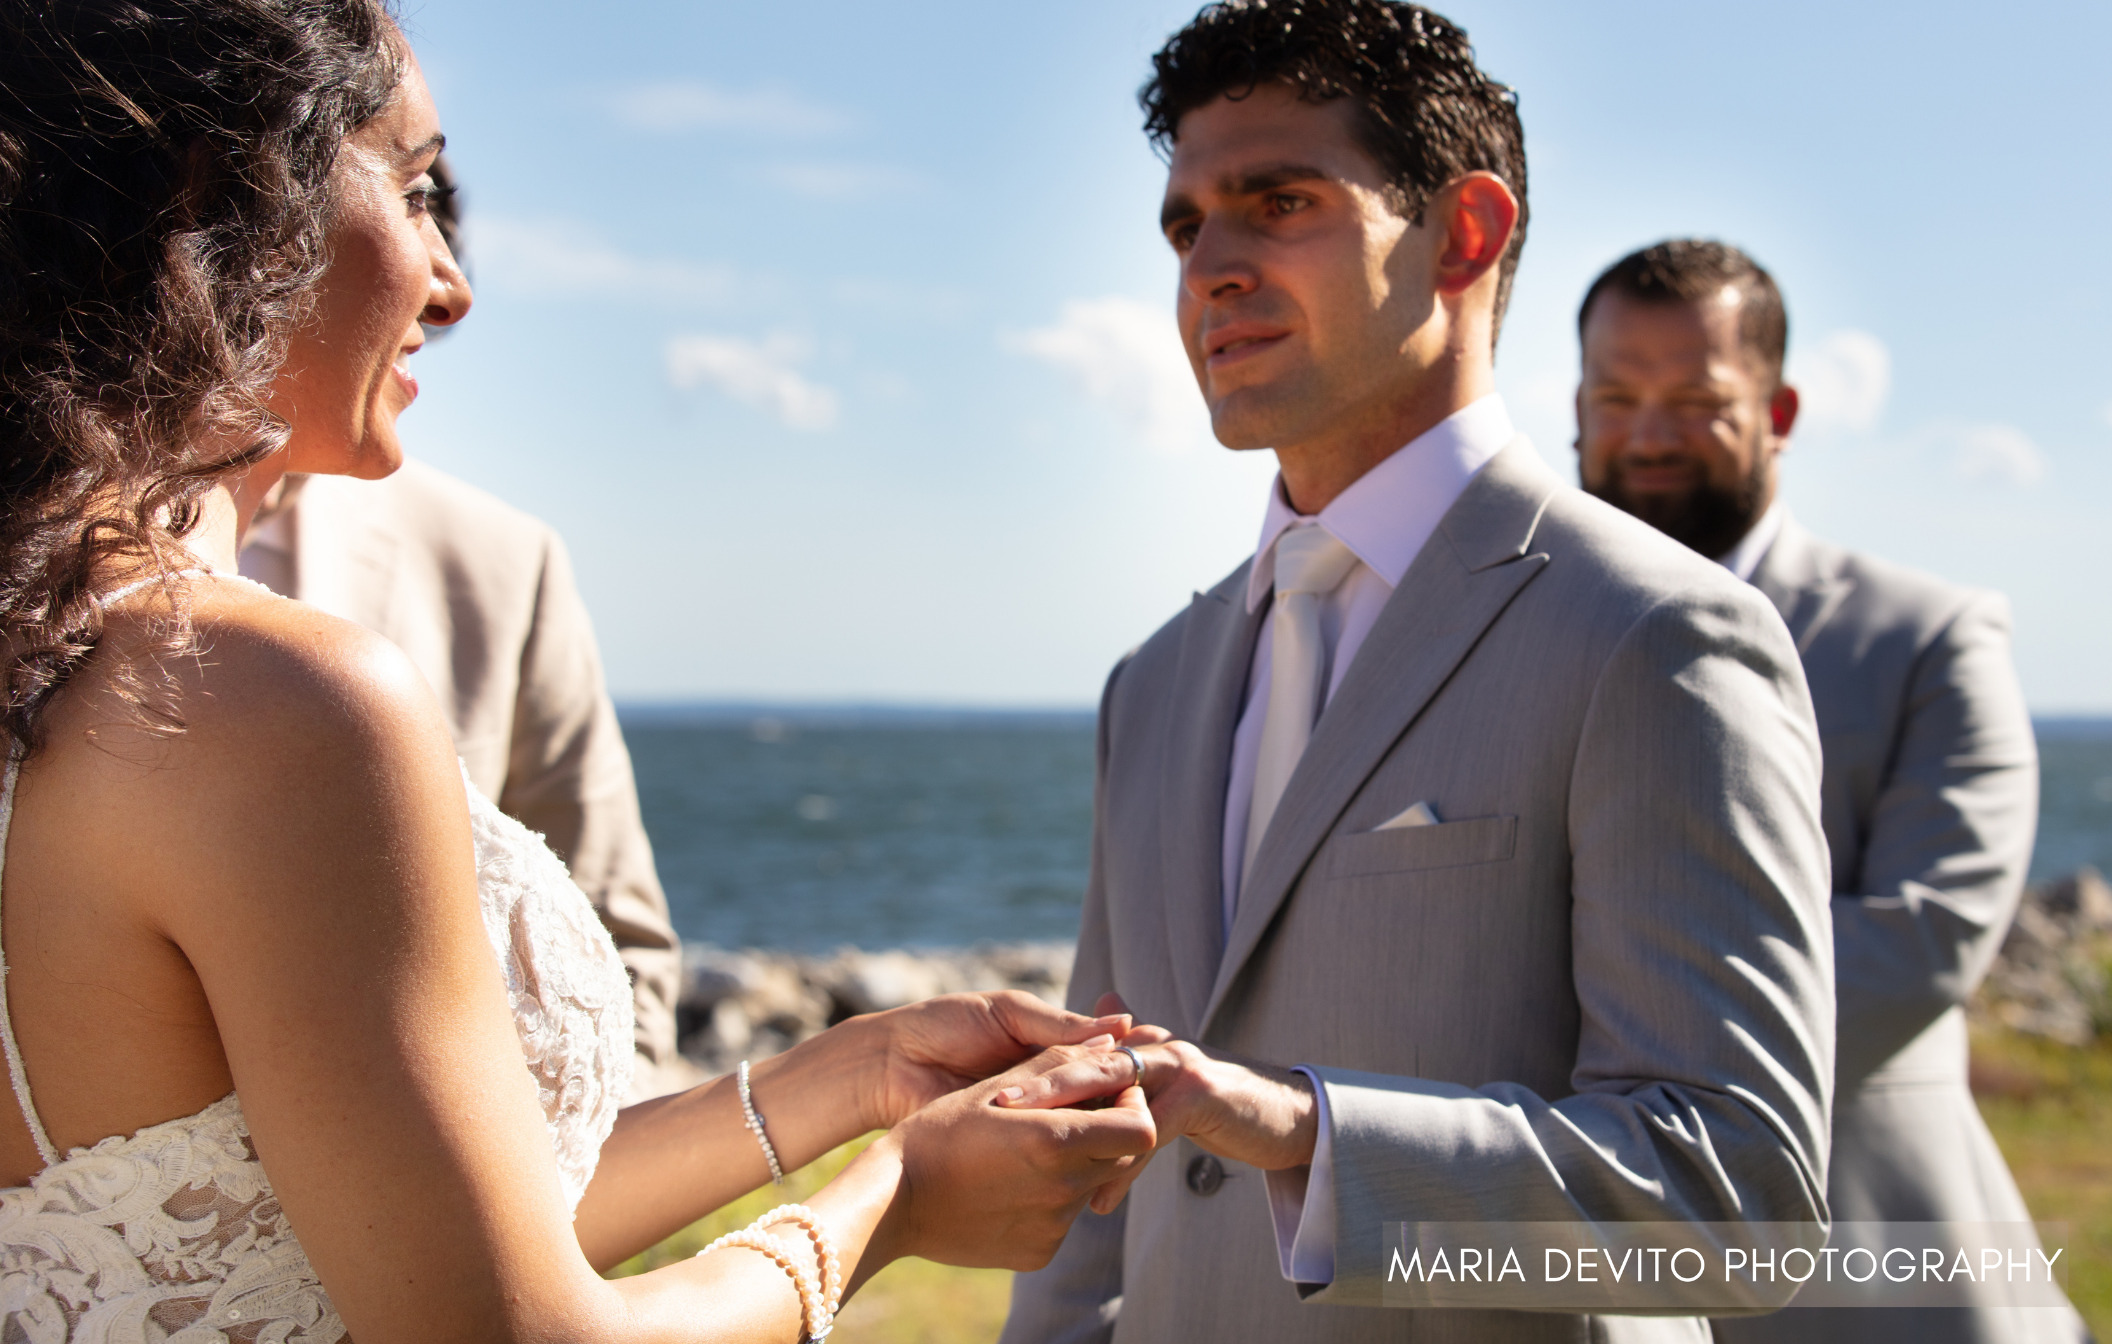 Bride and groom holding hands during wedding ceremony, saying their vows with officiant and groomsman in background with ocean backdrop.